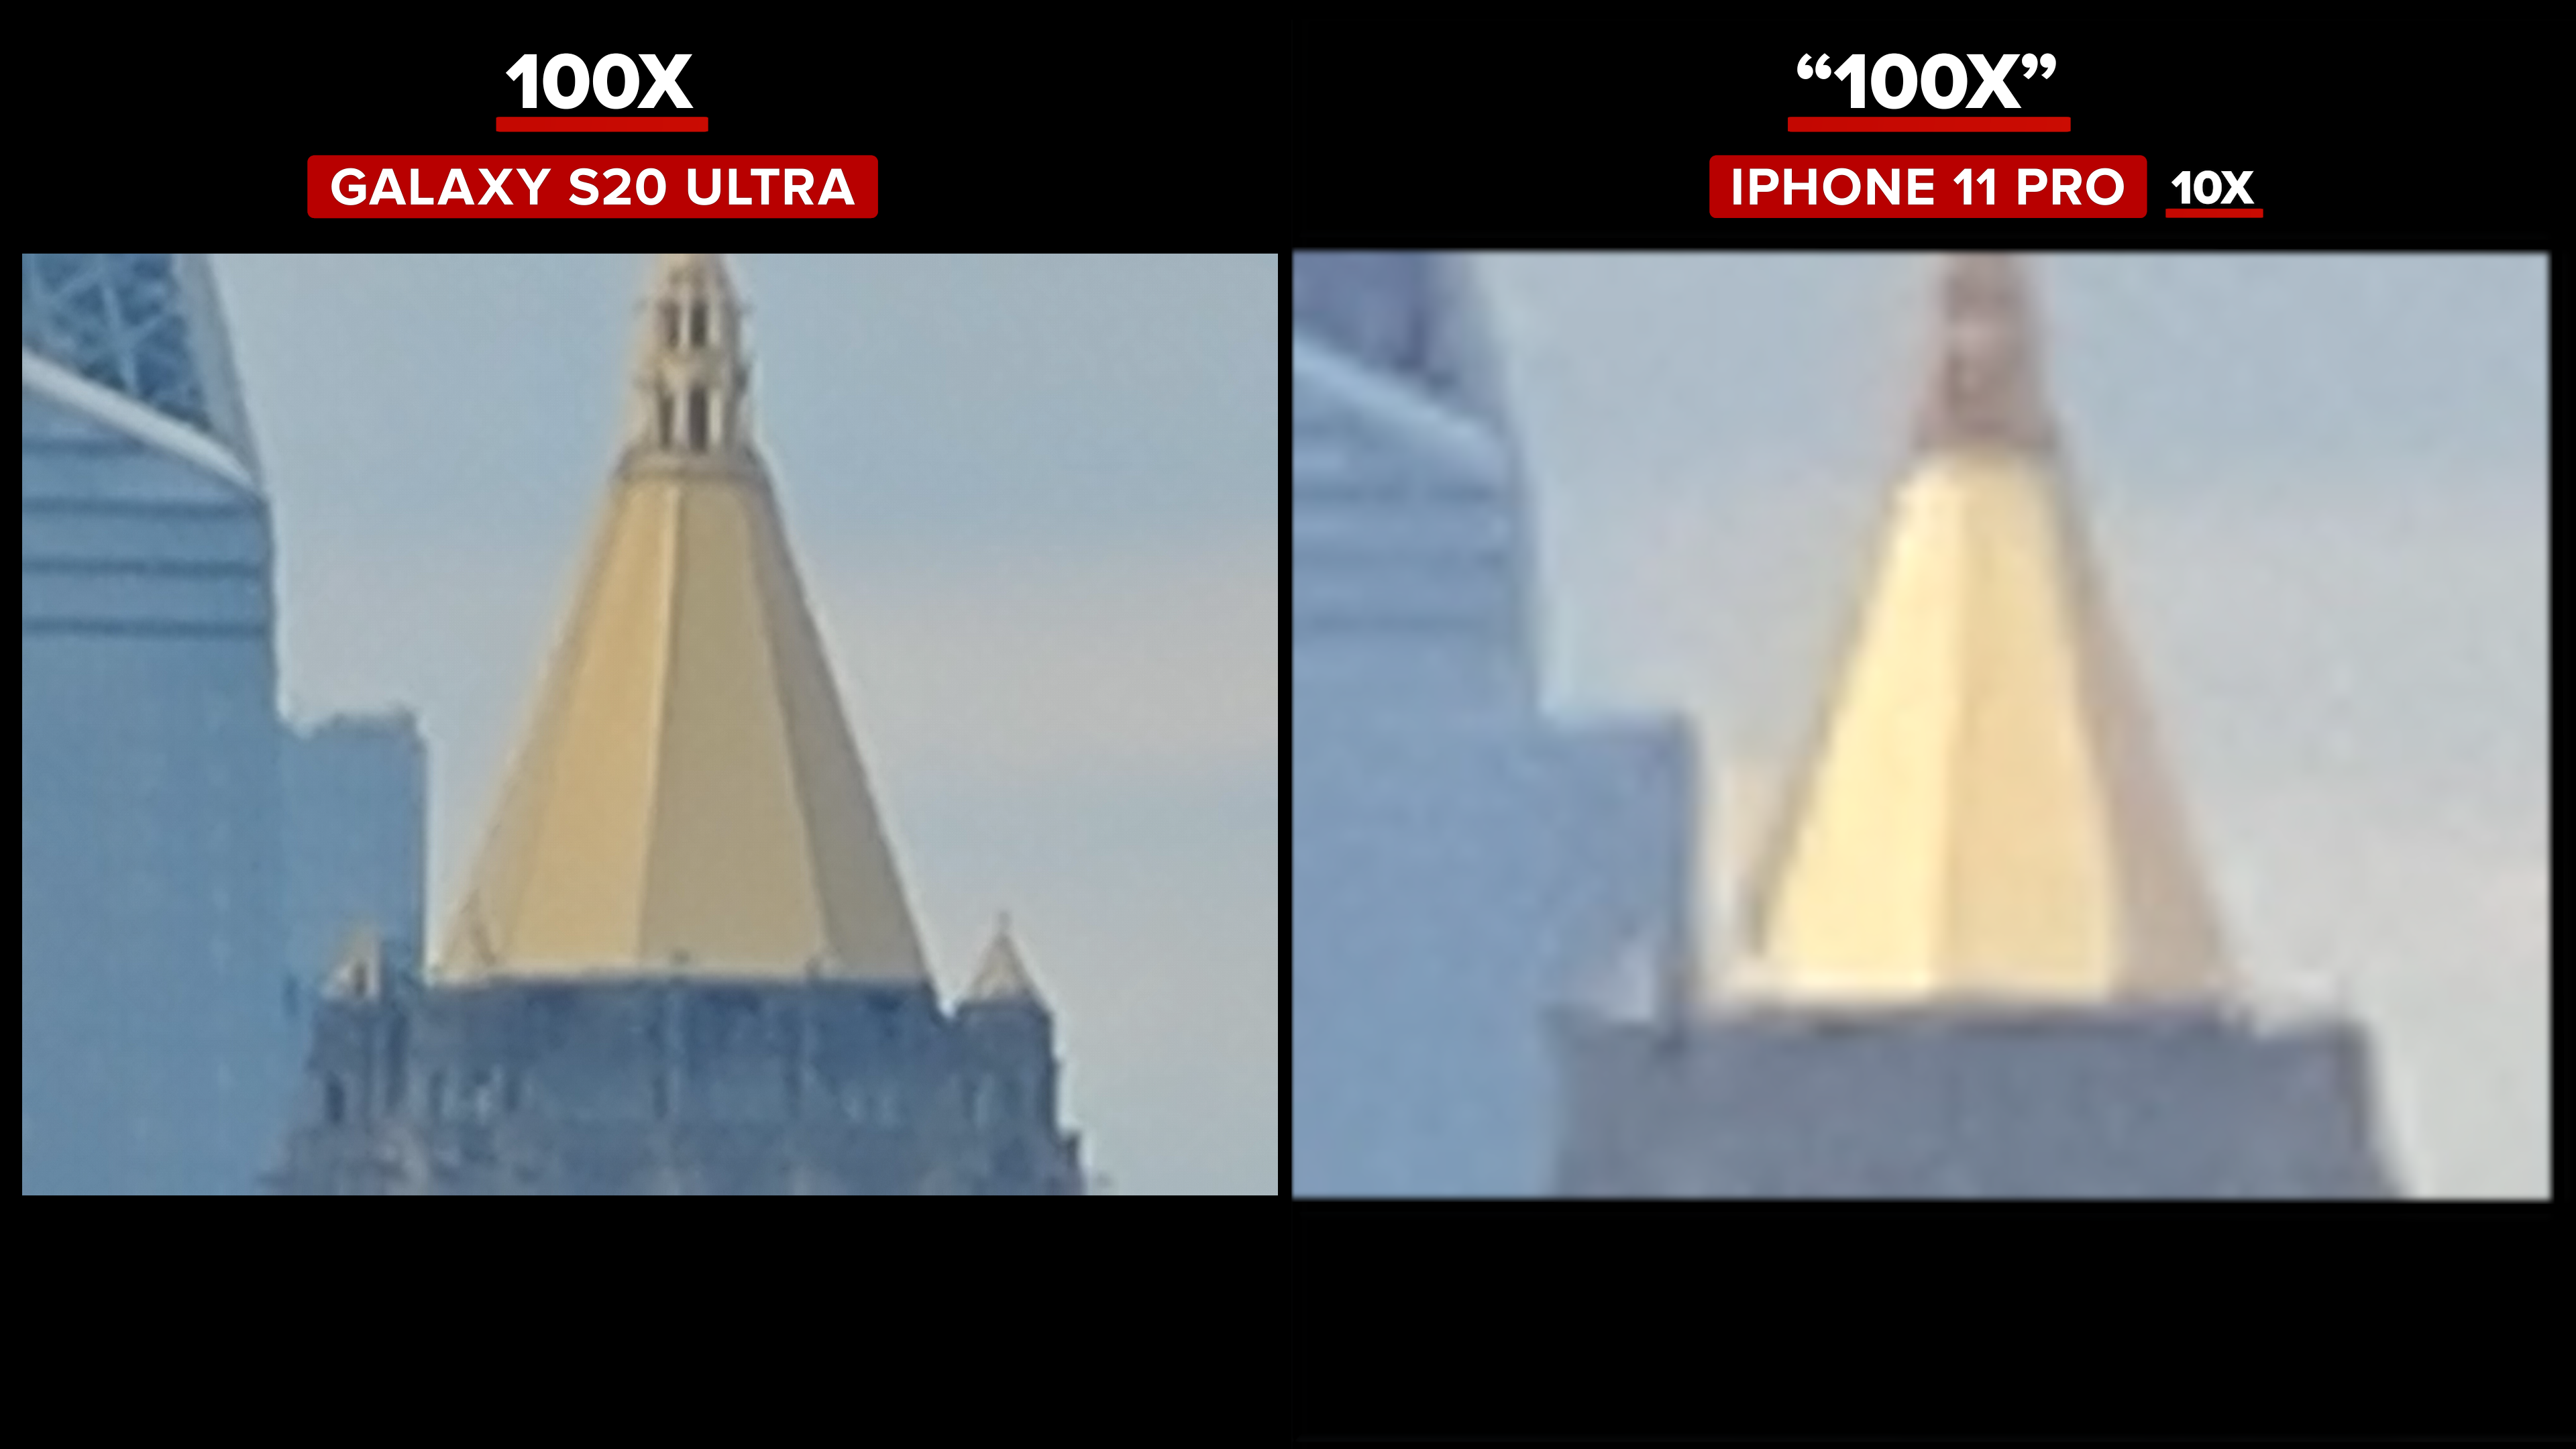 s20ultra-iphone-100x.png